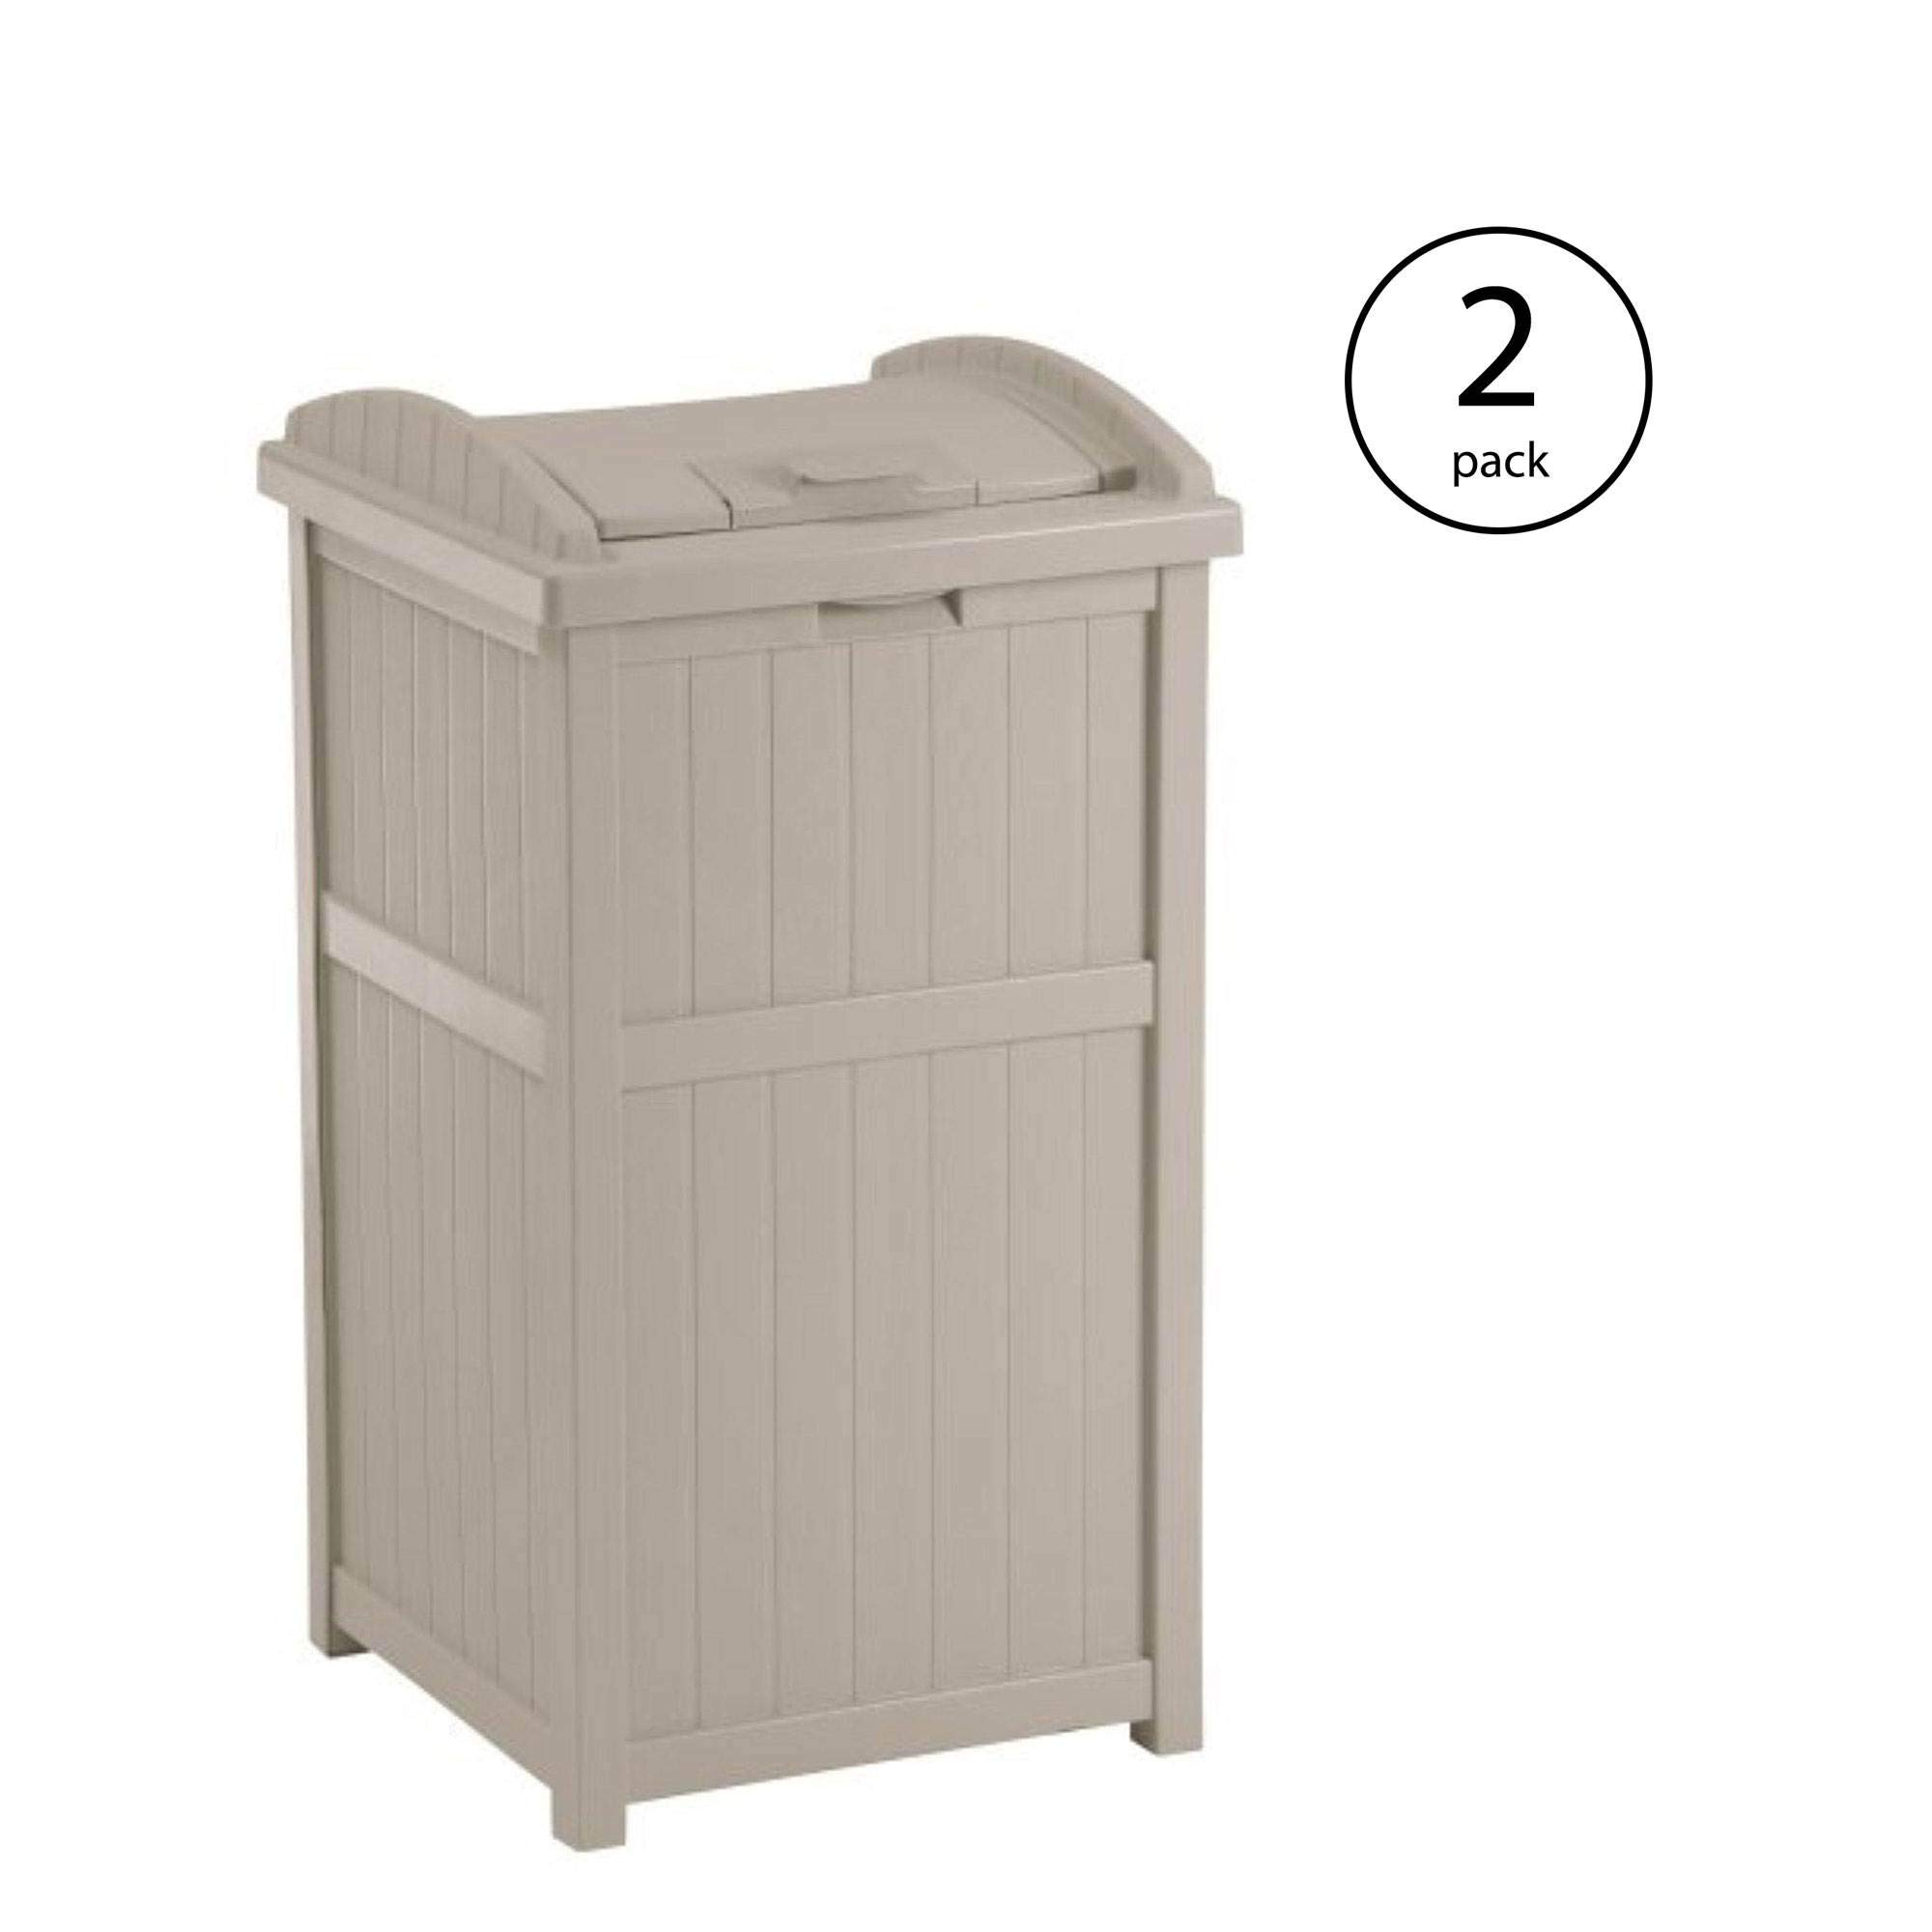 Suncast 30-33 Gallon Deck Patio Resin Garbage Trash Can Hideaway, Taupe (2 Pack) by Suncast